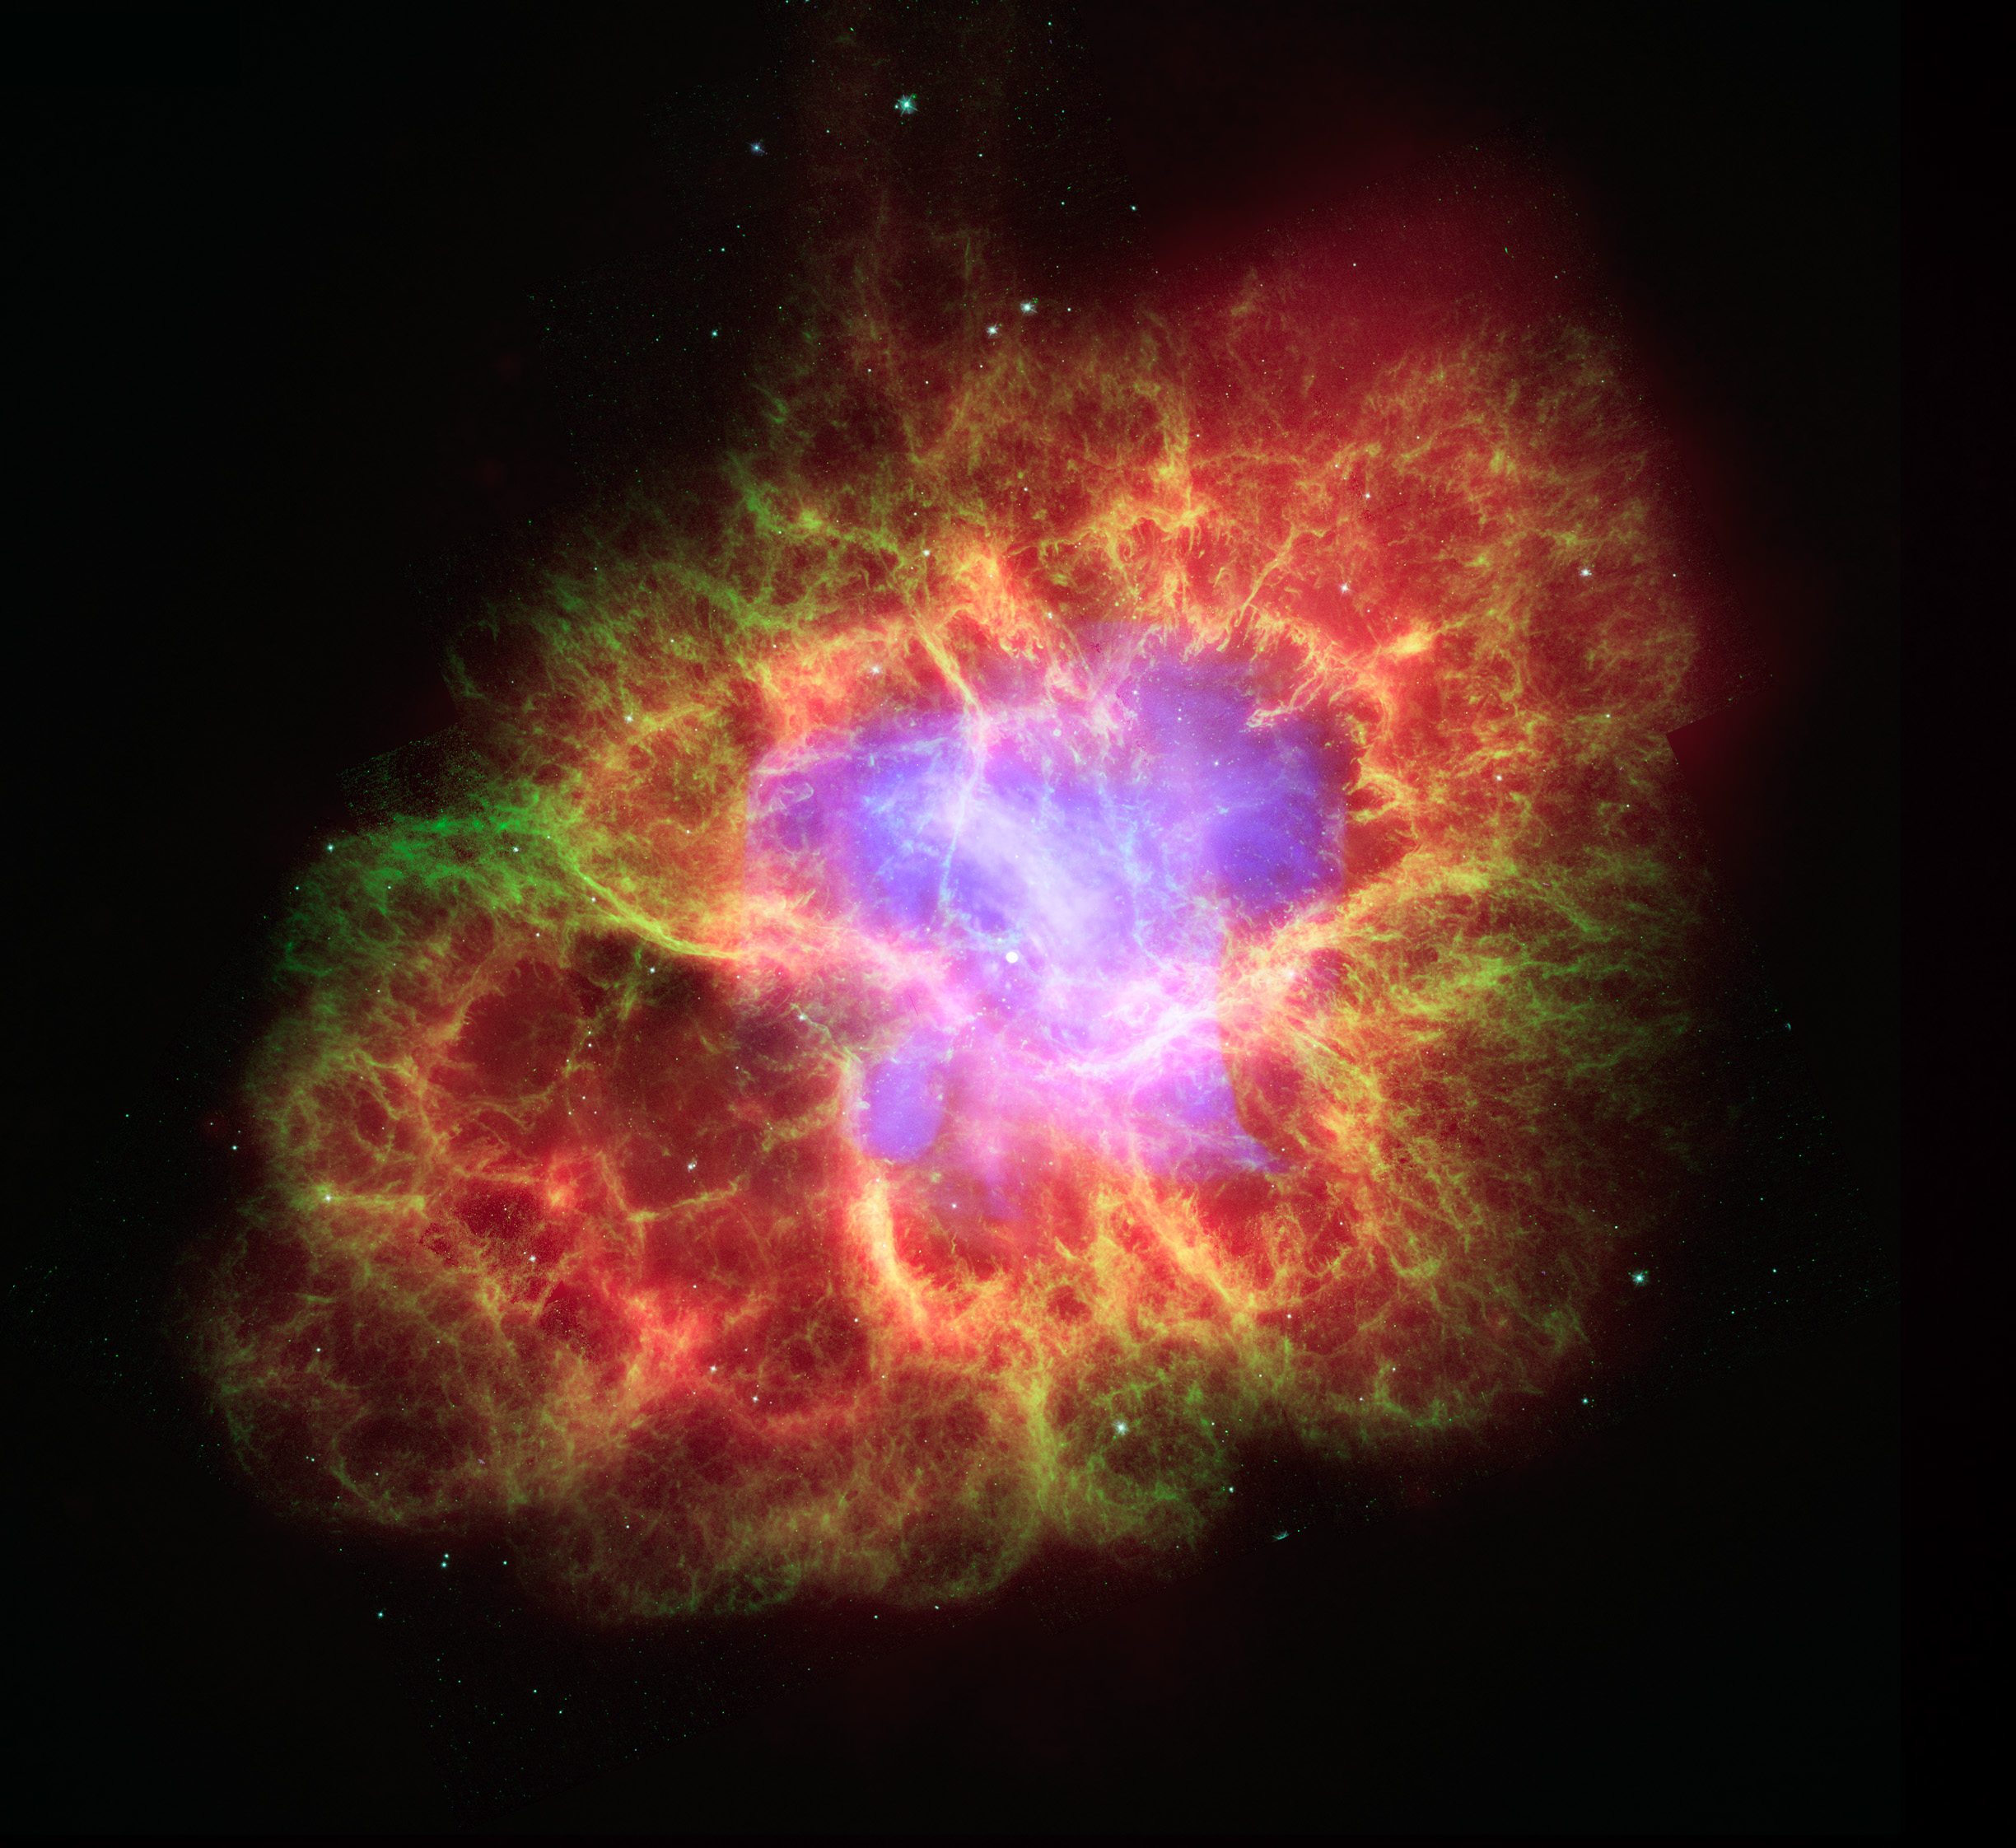 crab nebula visible - photo #10